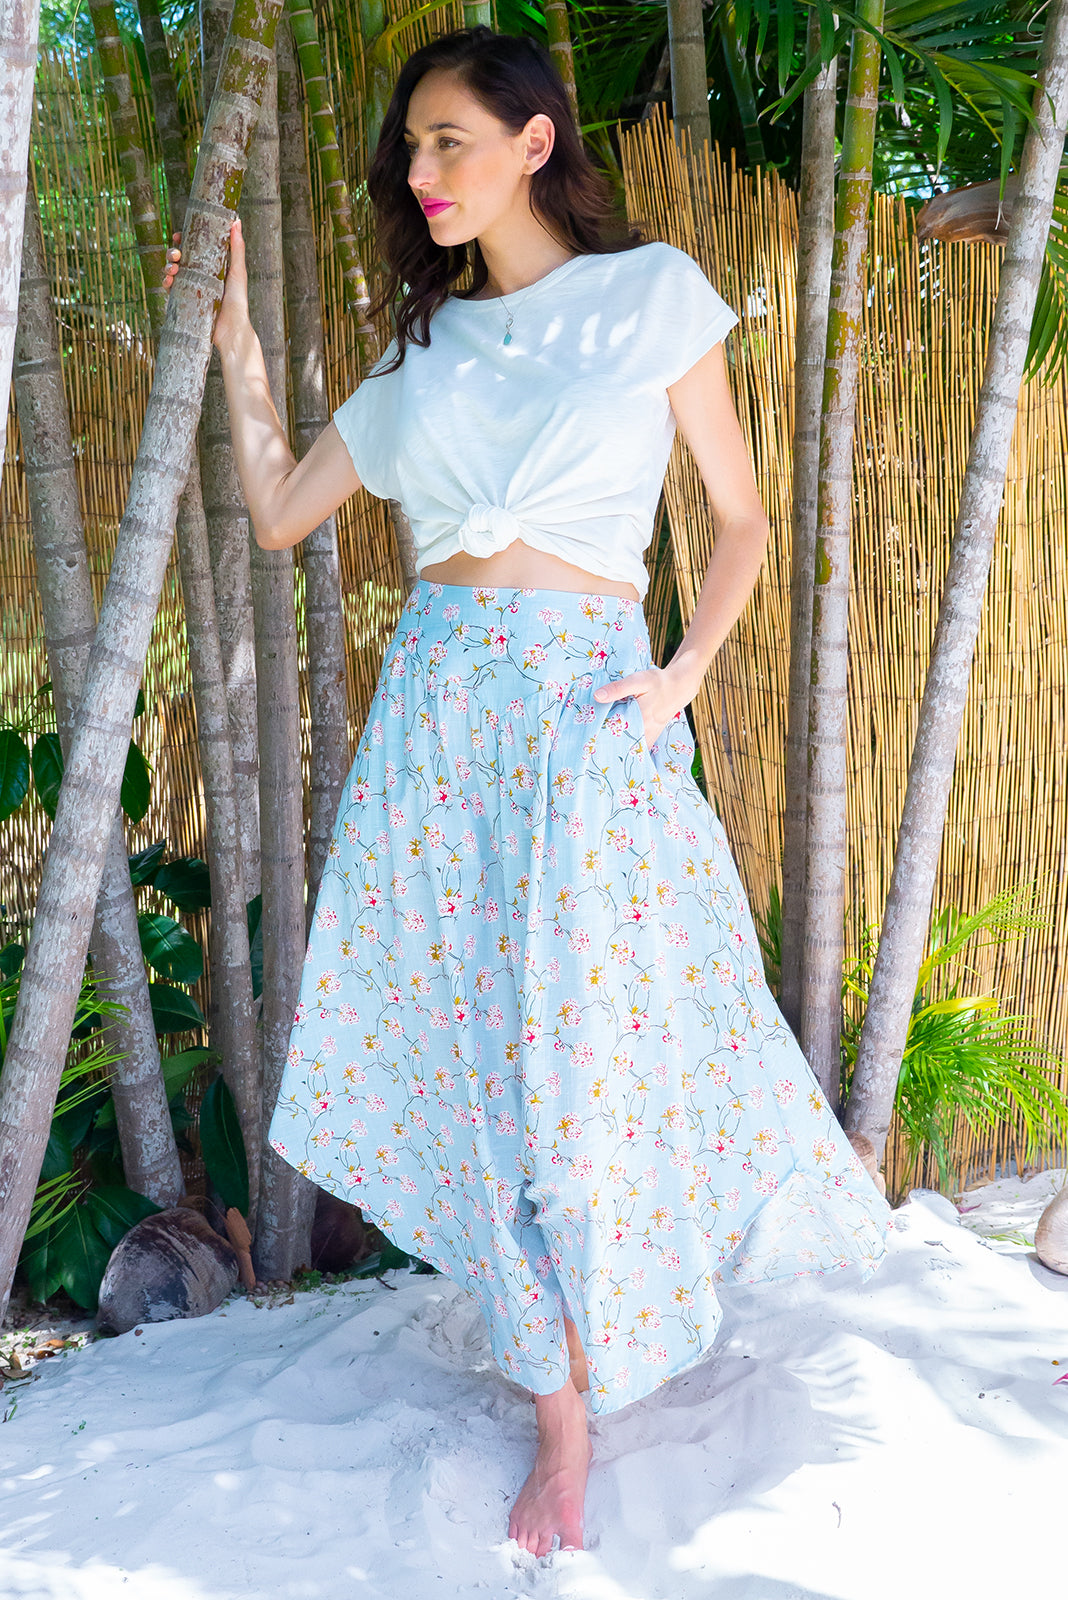 Sails Powder Bloom Maxi Skirt with a soft ruched elastic back and pockets in a gorgeous soft powder and floral print on a cotton rayon blend fabric